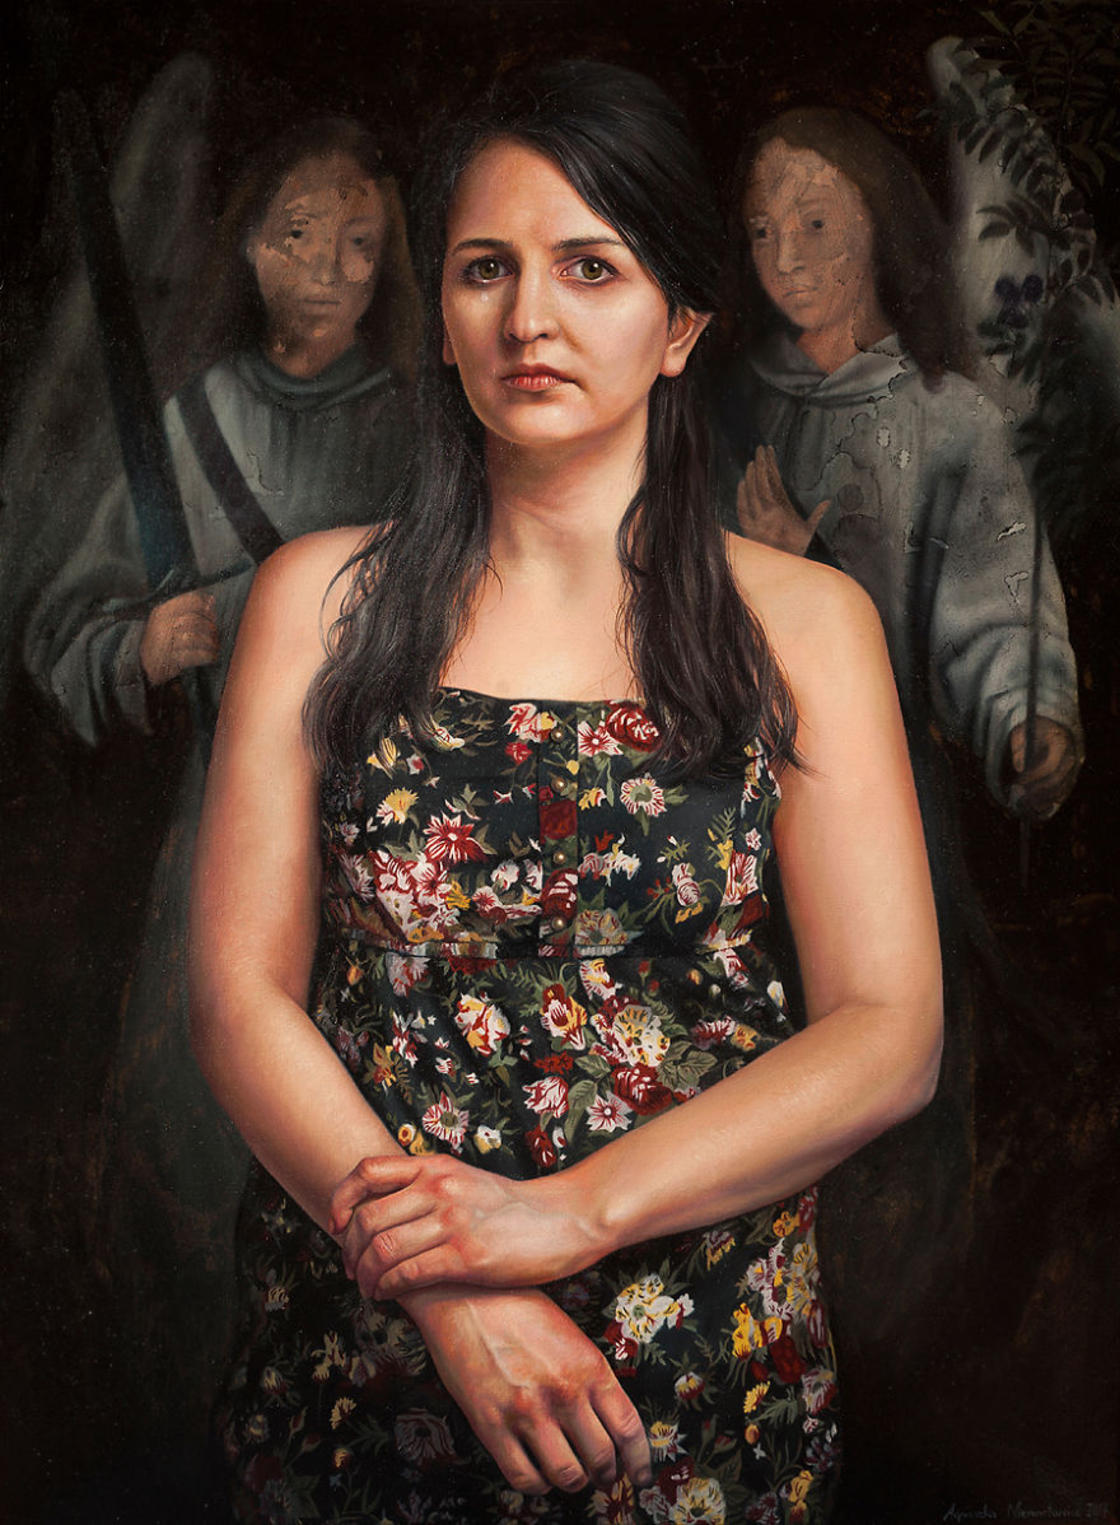 Classical painting invades these beautiful hyperreal portraits